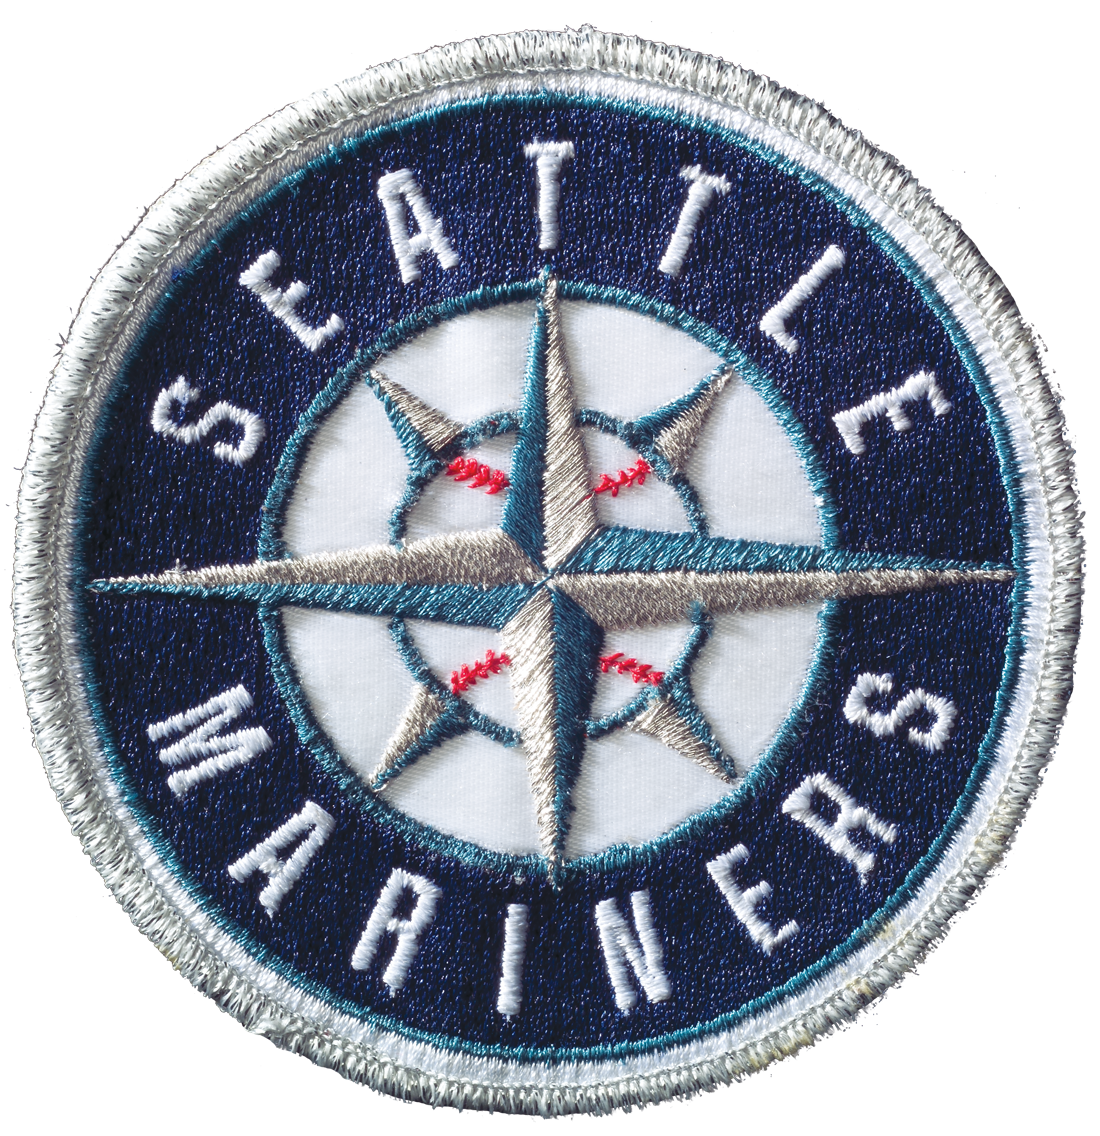 Seattle Mariners logo on a stitched patch